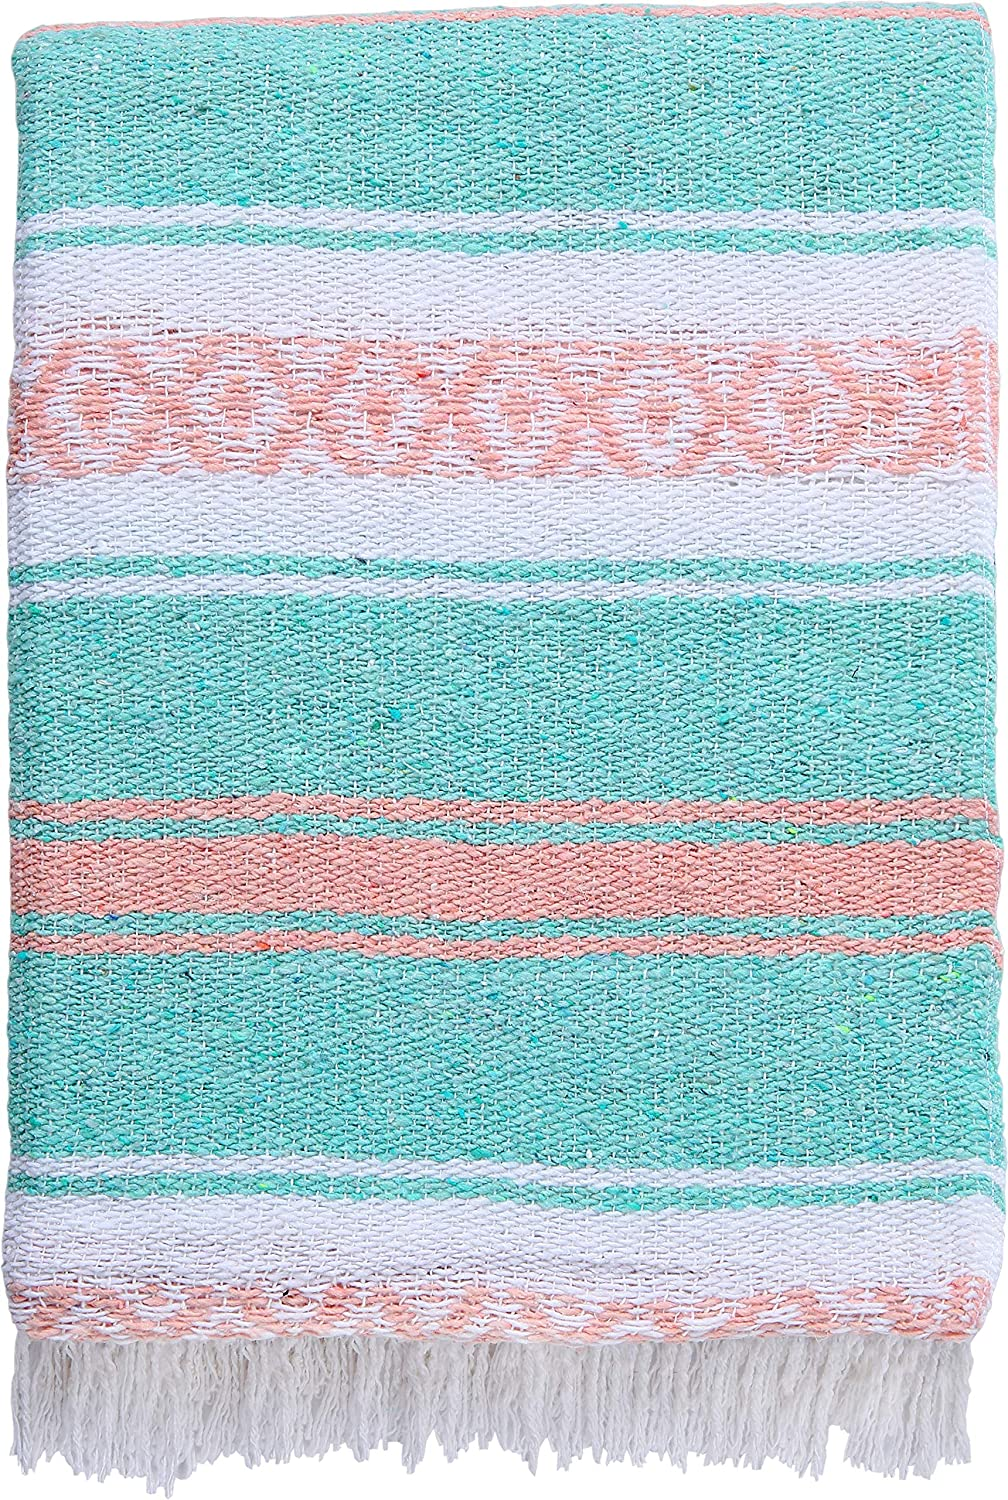 El Paso Designs Mexican Blanket Pastel Bloom Collection Yoga Classic Mexican Falsa Pattern Woven Throw 51in x 74in (Pink and Mint)